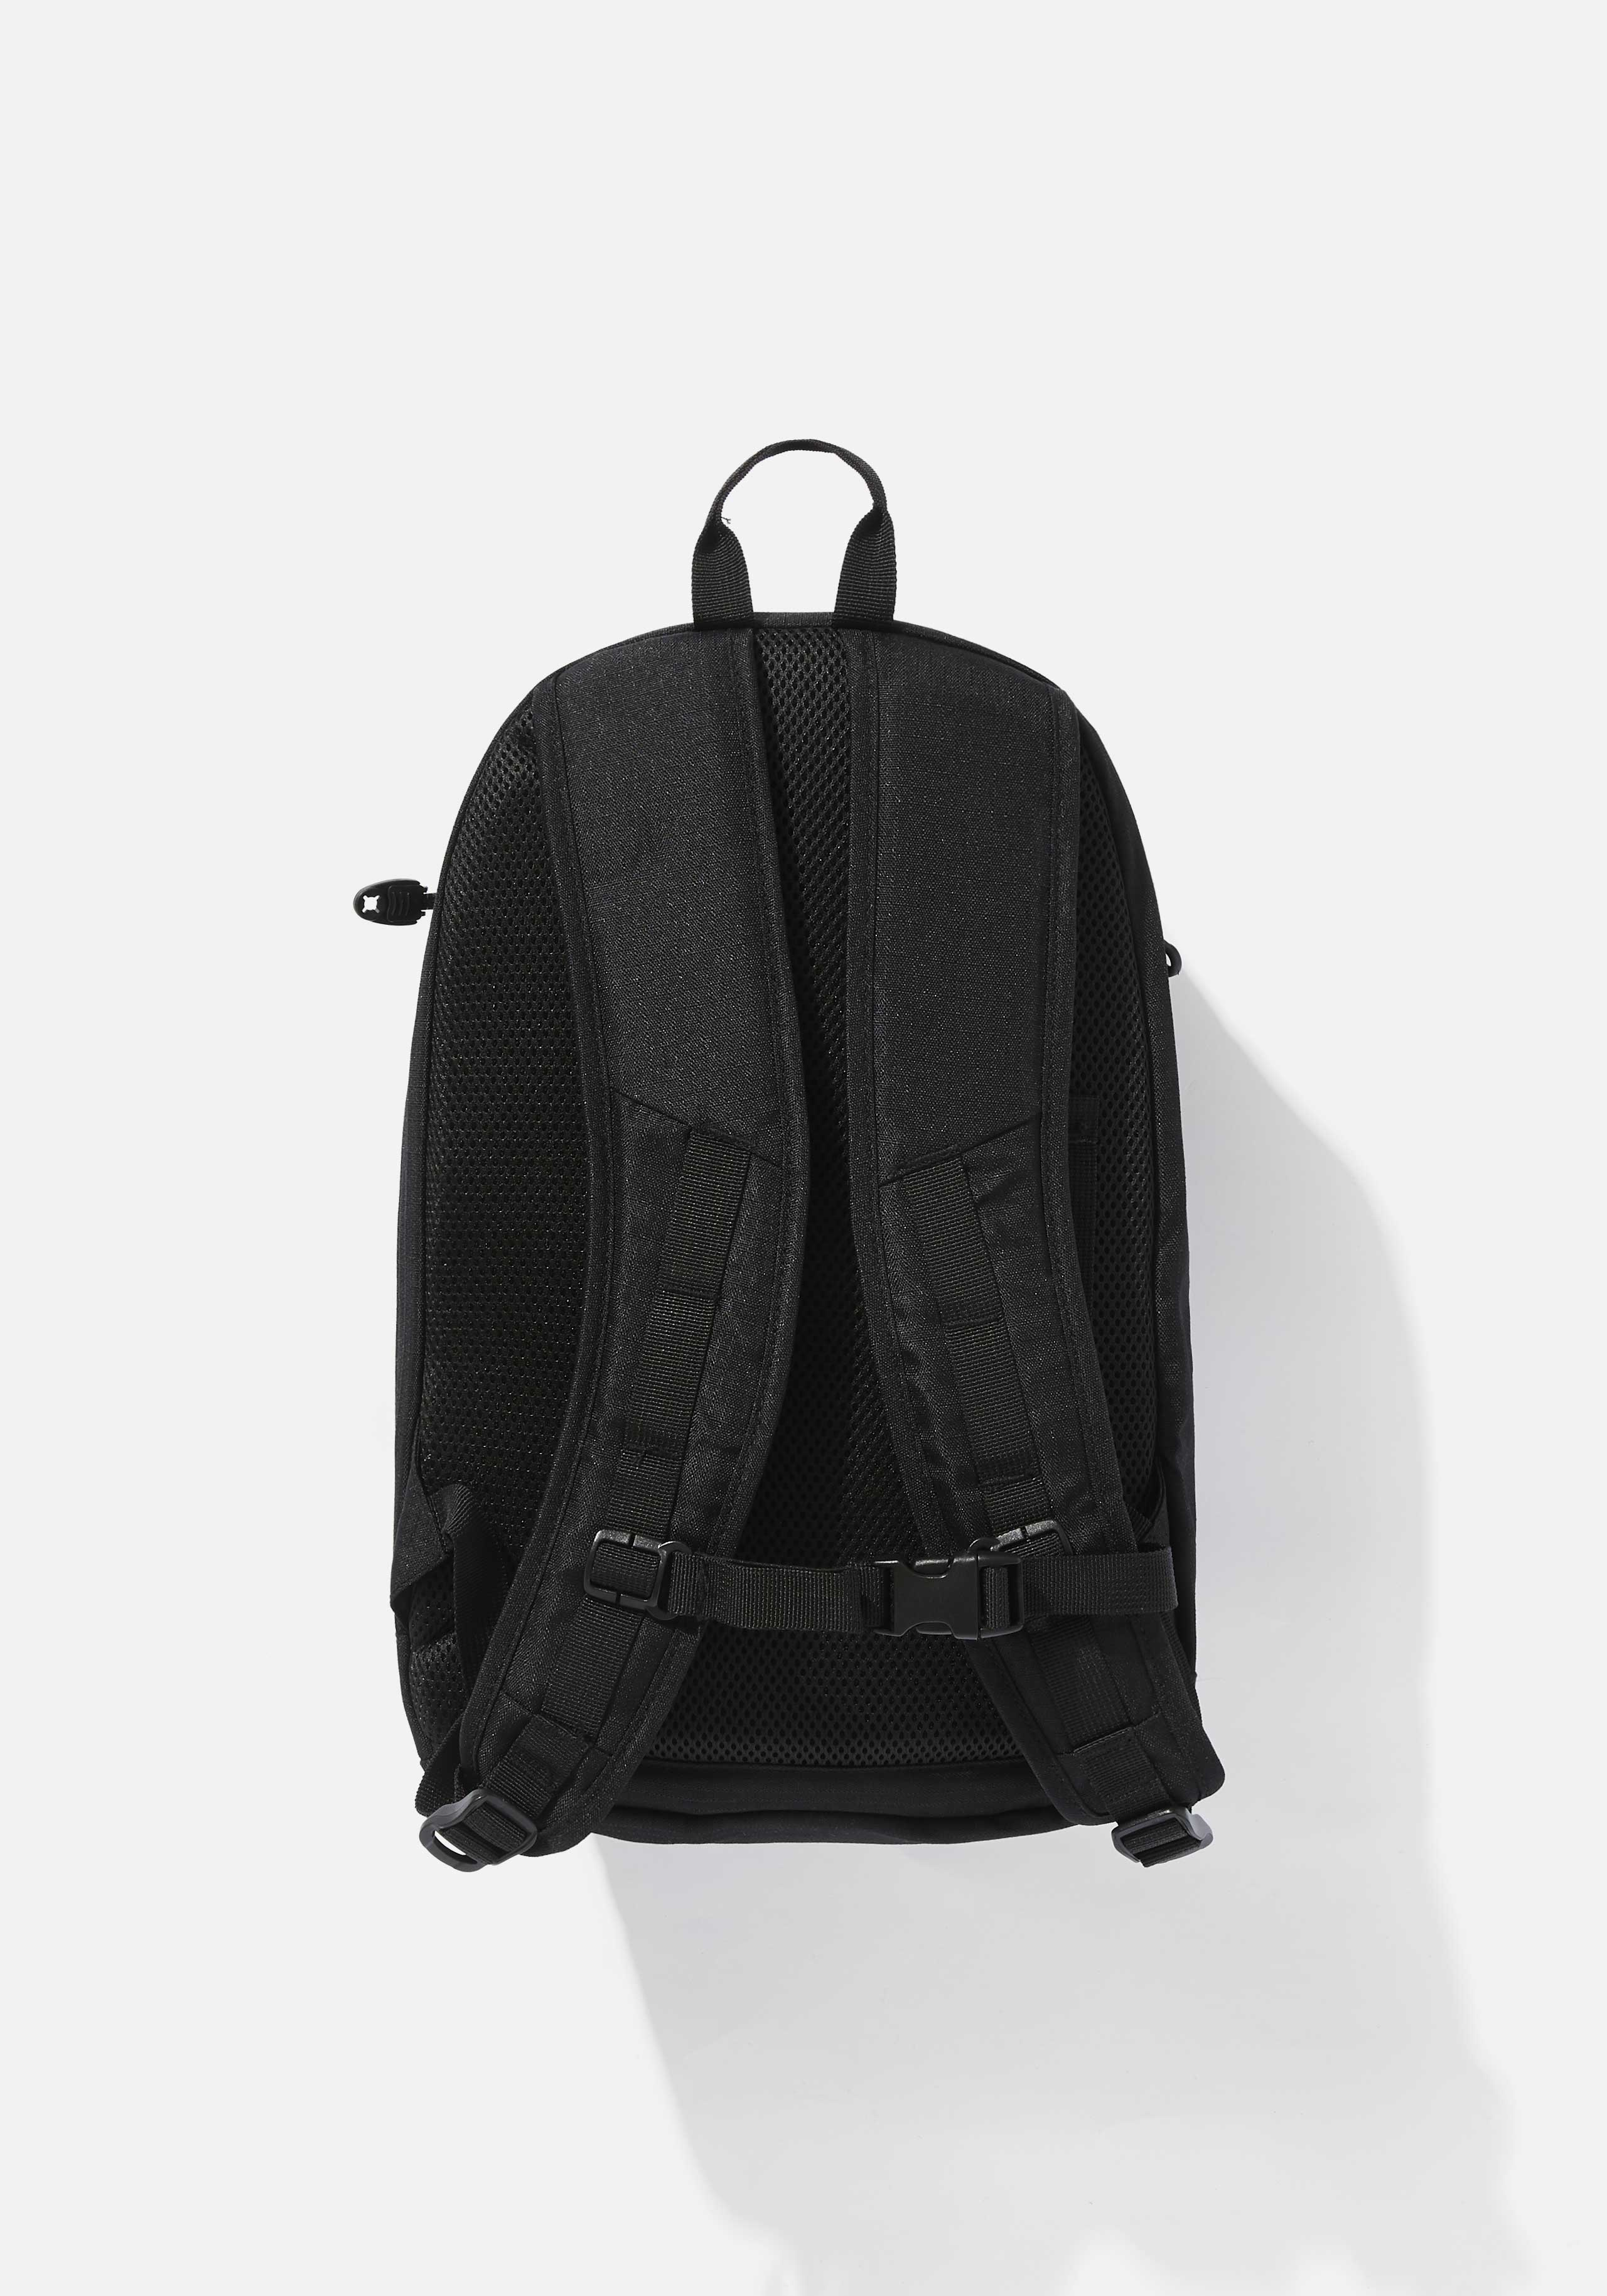 mki ripstop backpack 15l 2